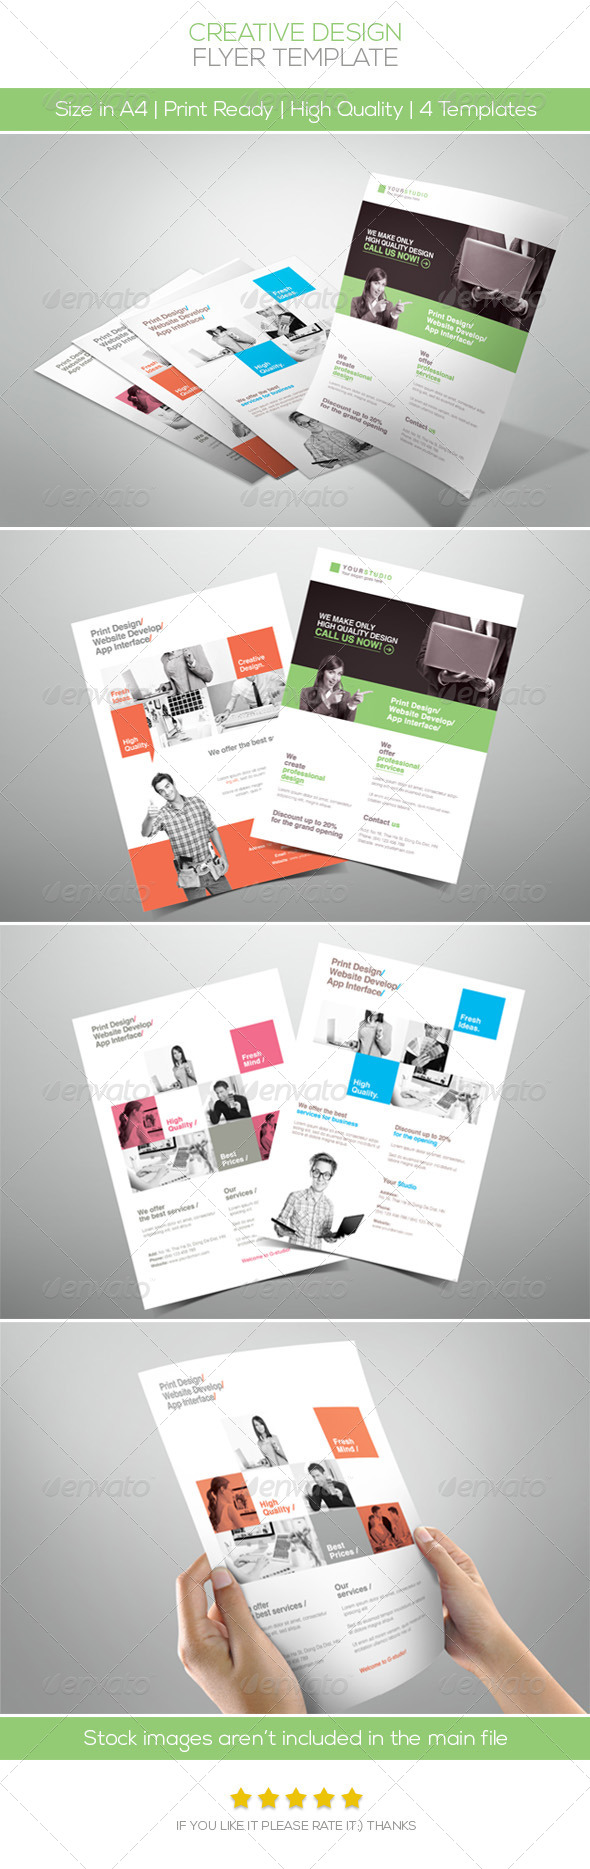 Creative Design Company Flyer - Corporate Flyers